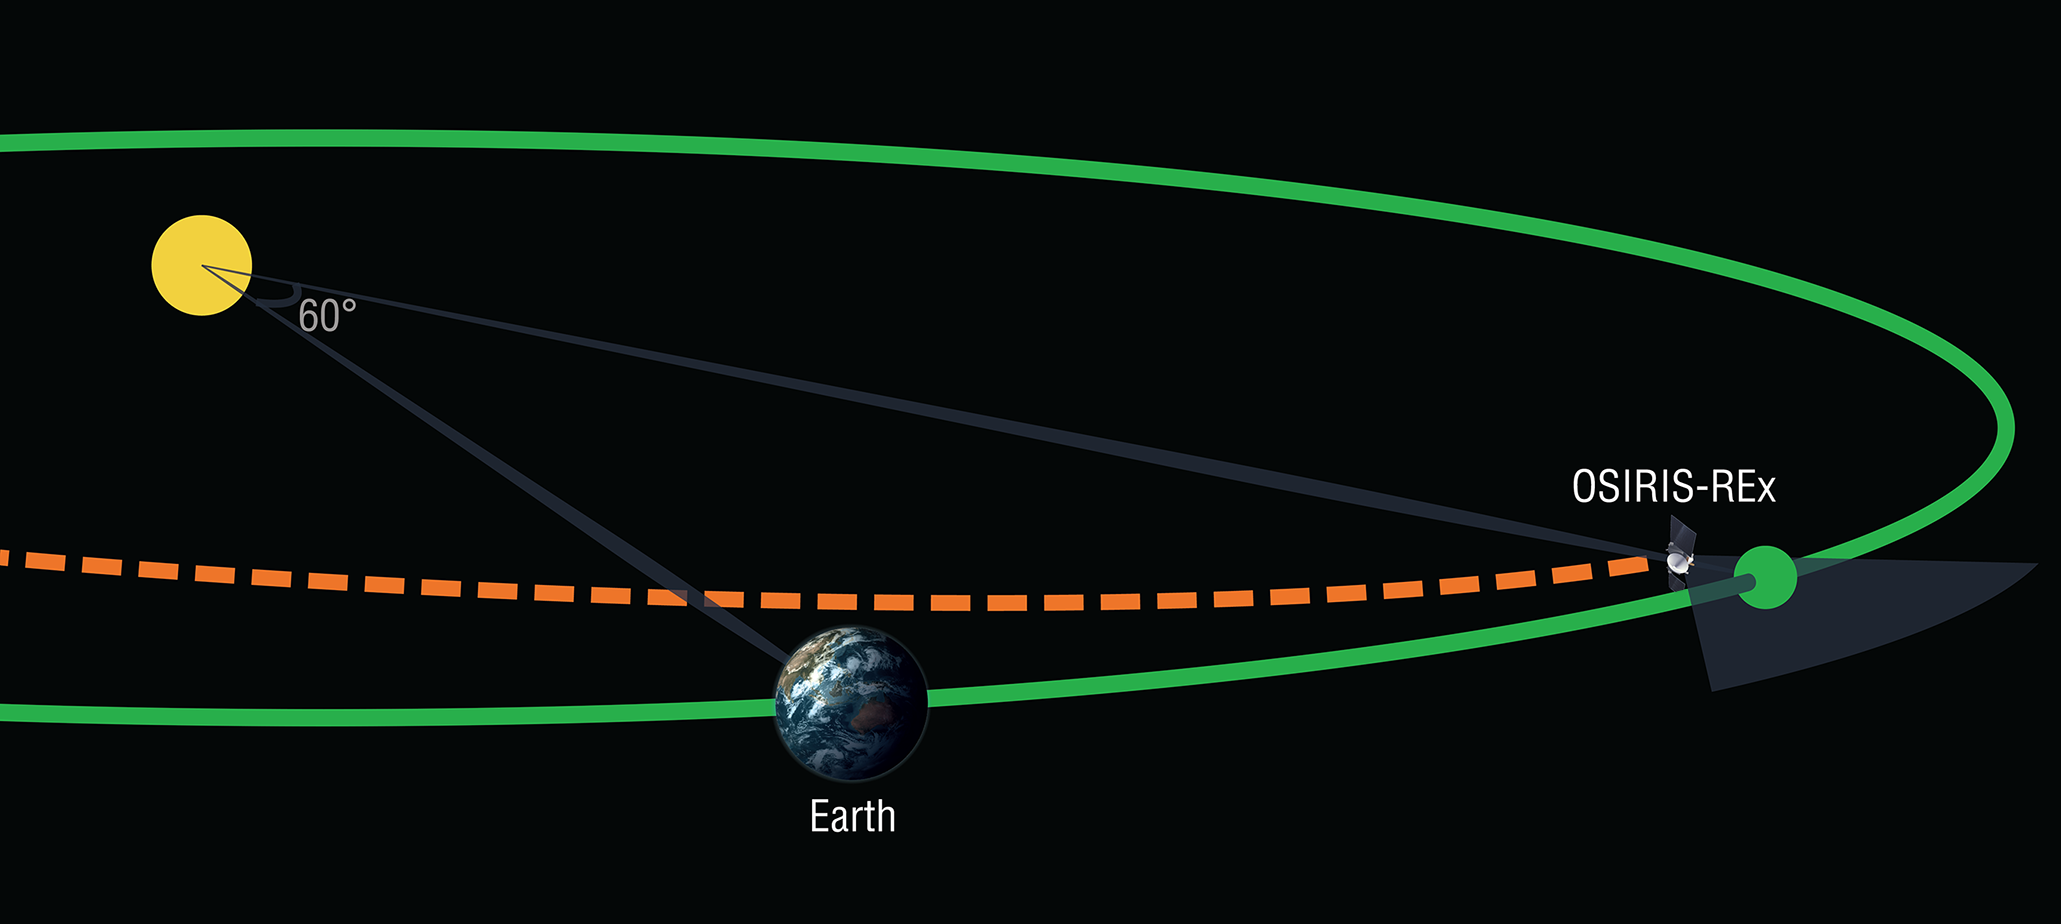 In February 2017, the OSIRIS-REx spacecraft will undertake a search for Earth-Trojan asteroids while on its outbound journey to the asteroid Bennu. Earth Trojans are asteroids that share an orbit with Earth while remaining near a stable point 60 degrees in front of or behind the planet. Credit: University of Arizona/Heather Roper